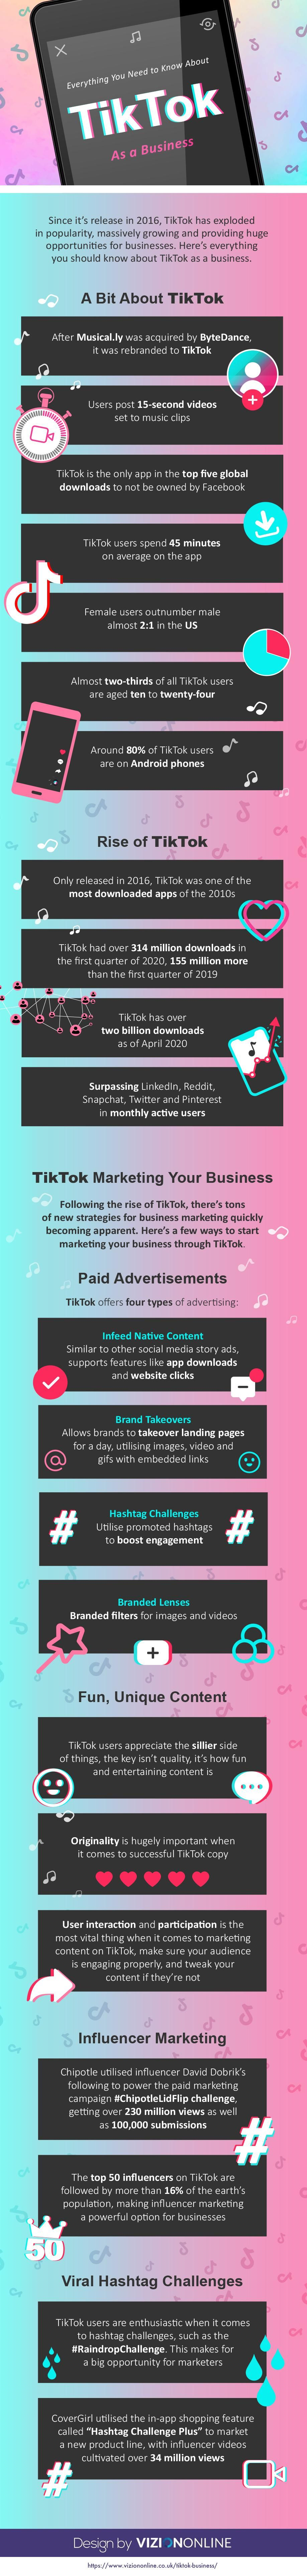 Everything You Need To Know About Tiktok As A Business Business Infographic Infographic Marketing Infographic